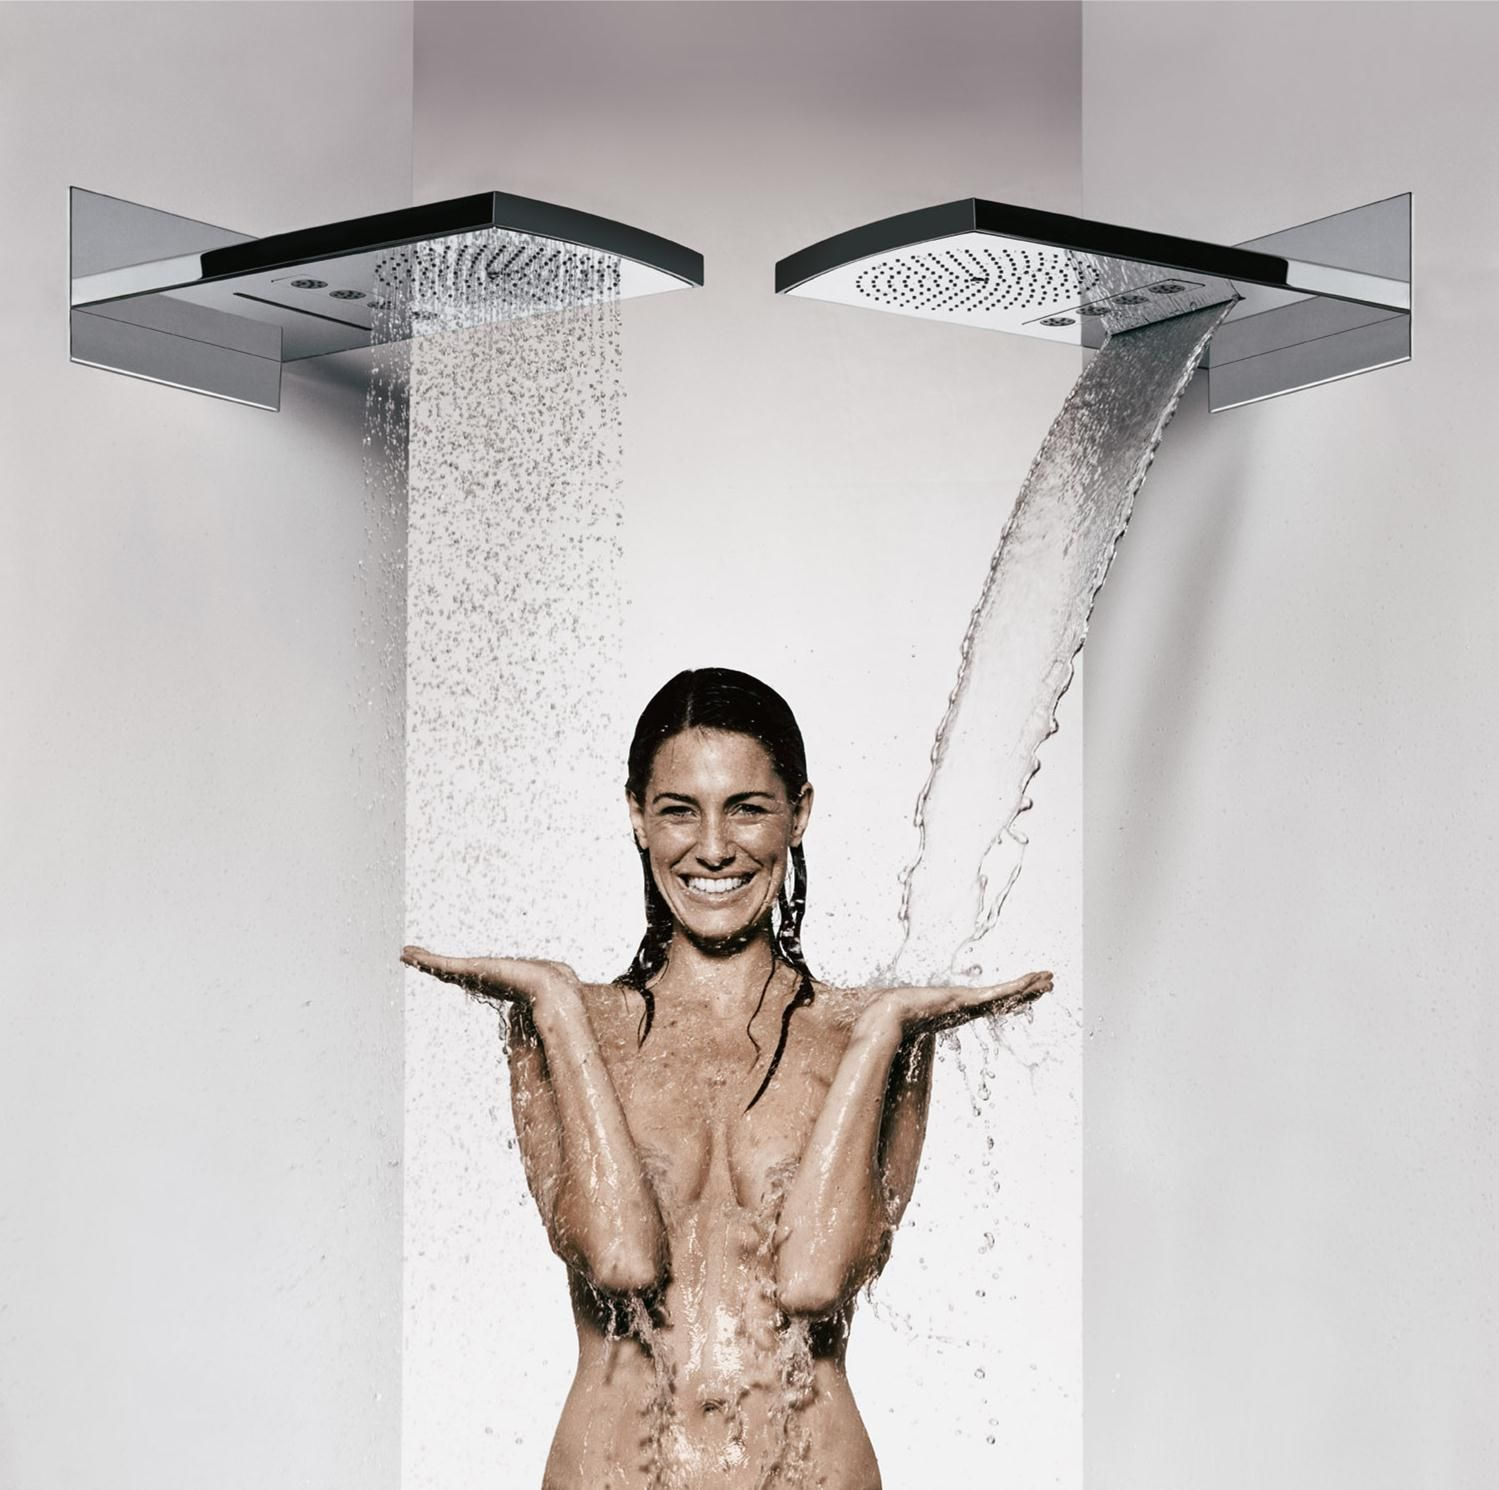 hansgrohe bathtub shower. alexia dives posted raindance rainfall shower head by hansgrohe: waterfall, hydromassage via a of aerated raindrops, or both? indesignlive hansgrohe bathtub